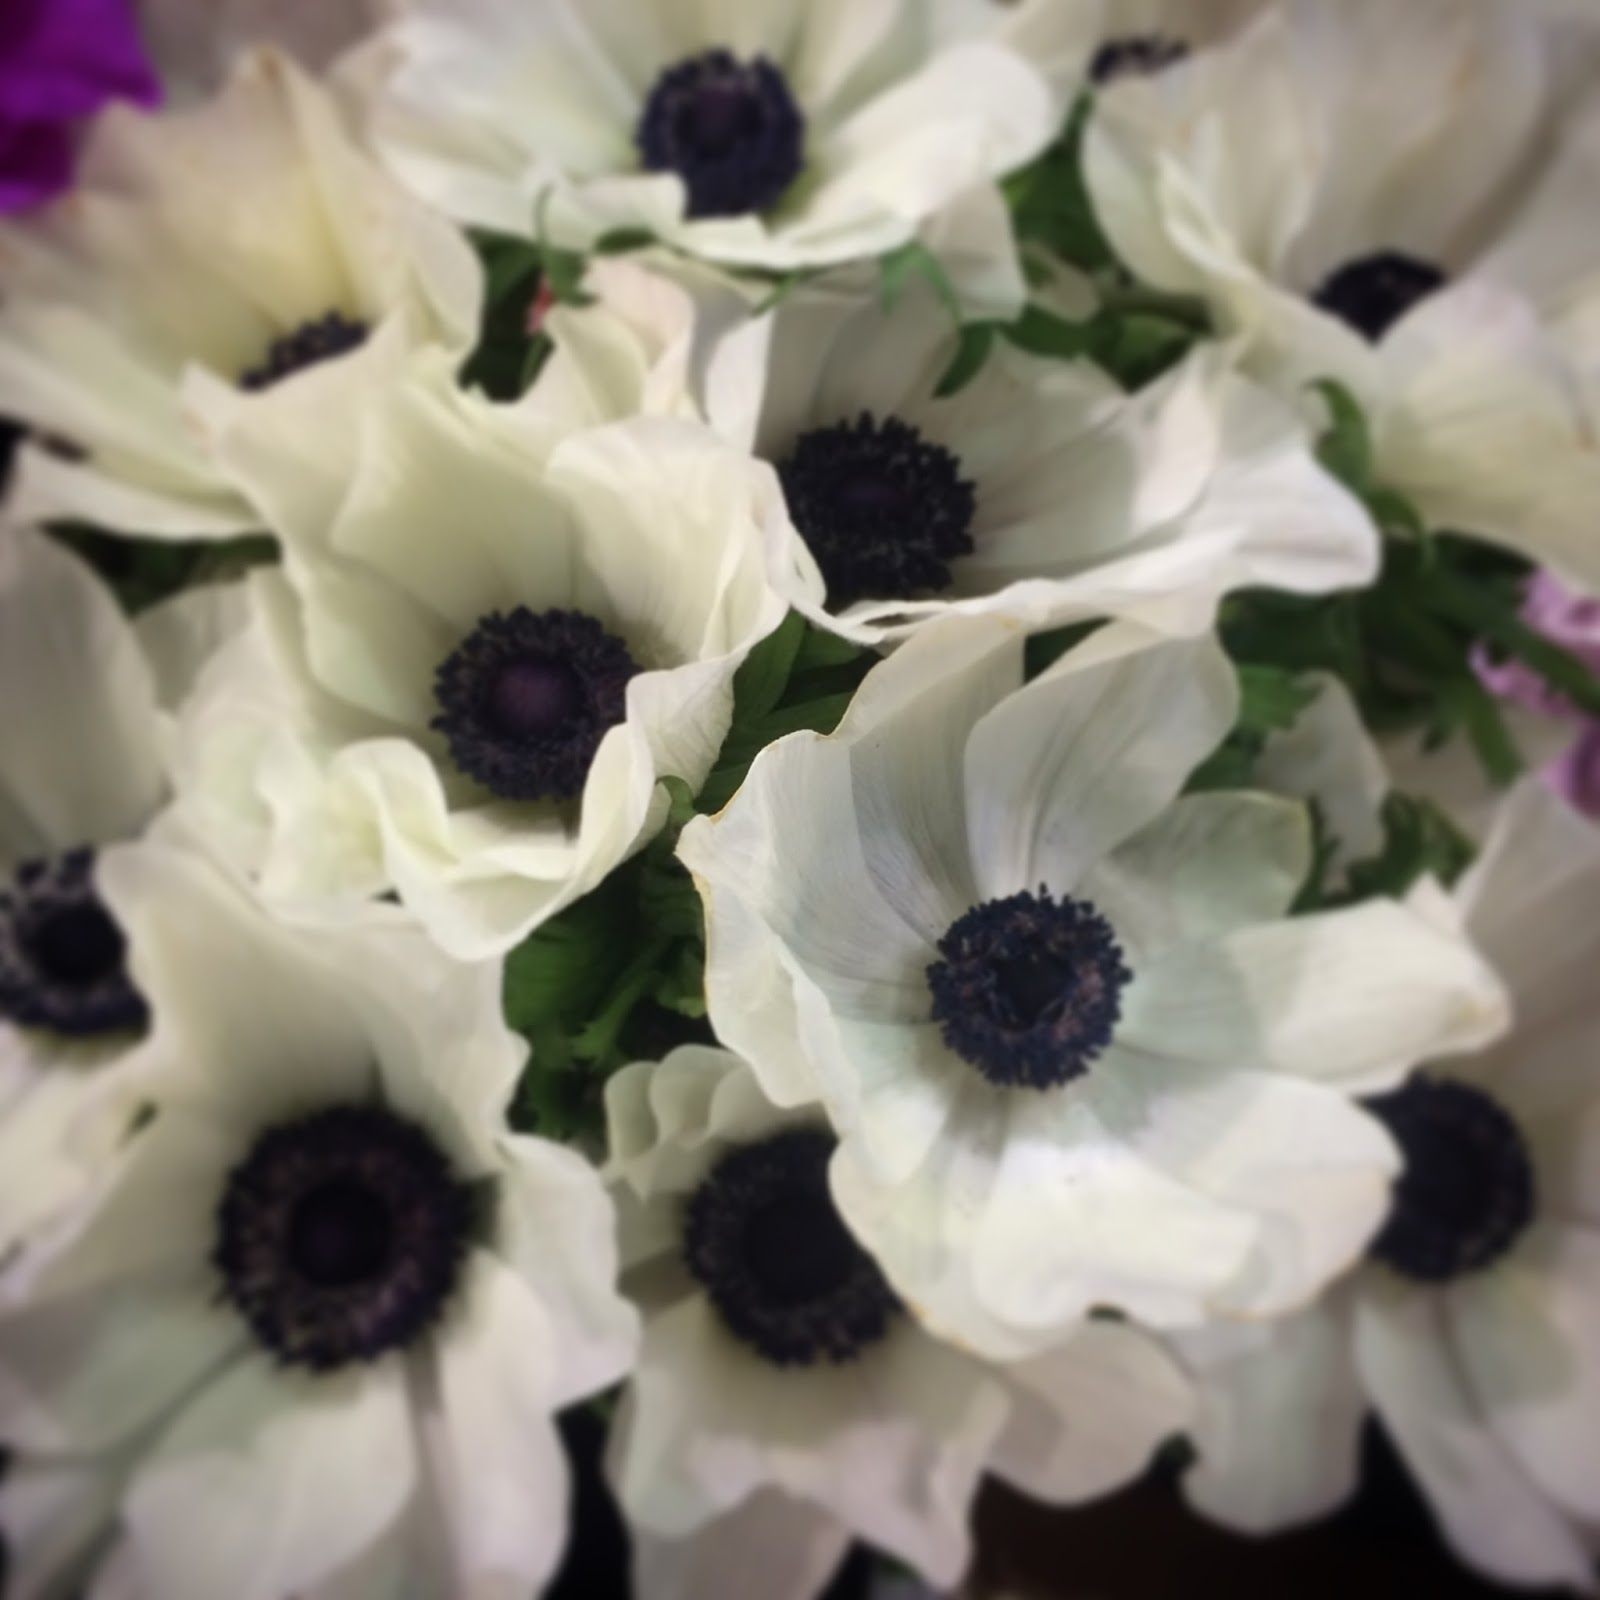 The Top 10 Things To Look For When Choosing A Floral Design School